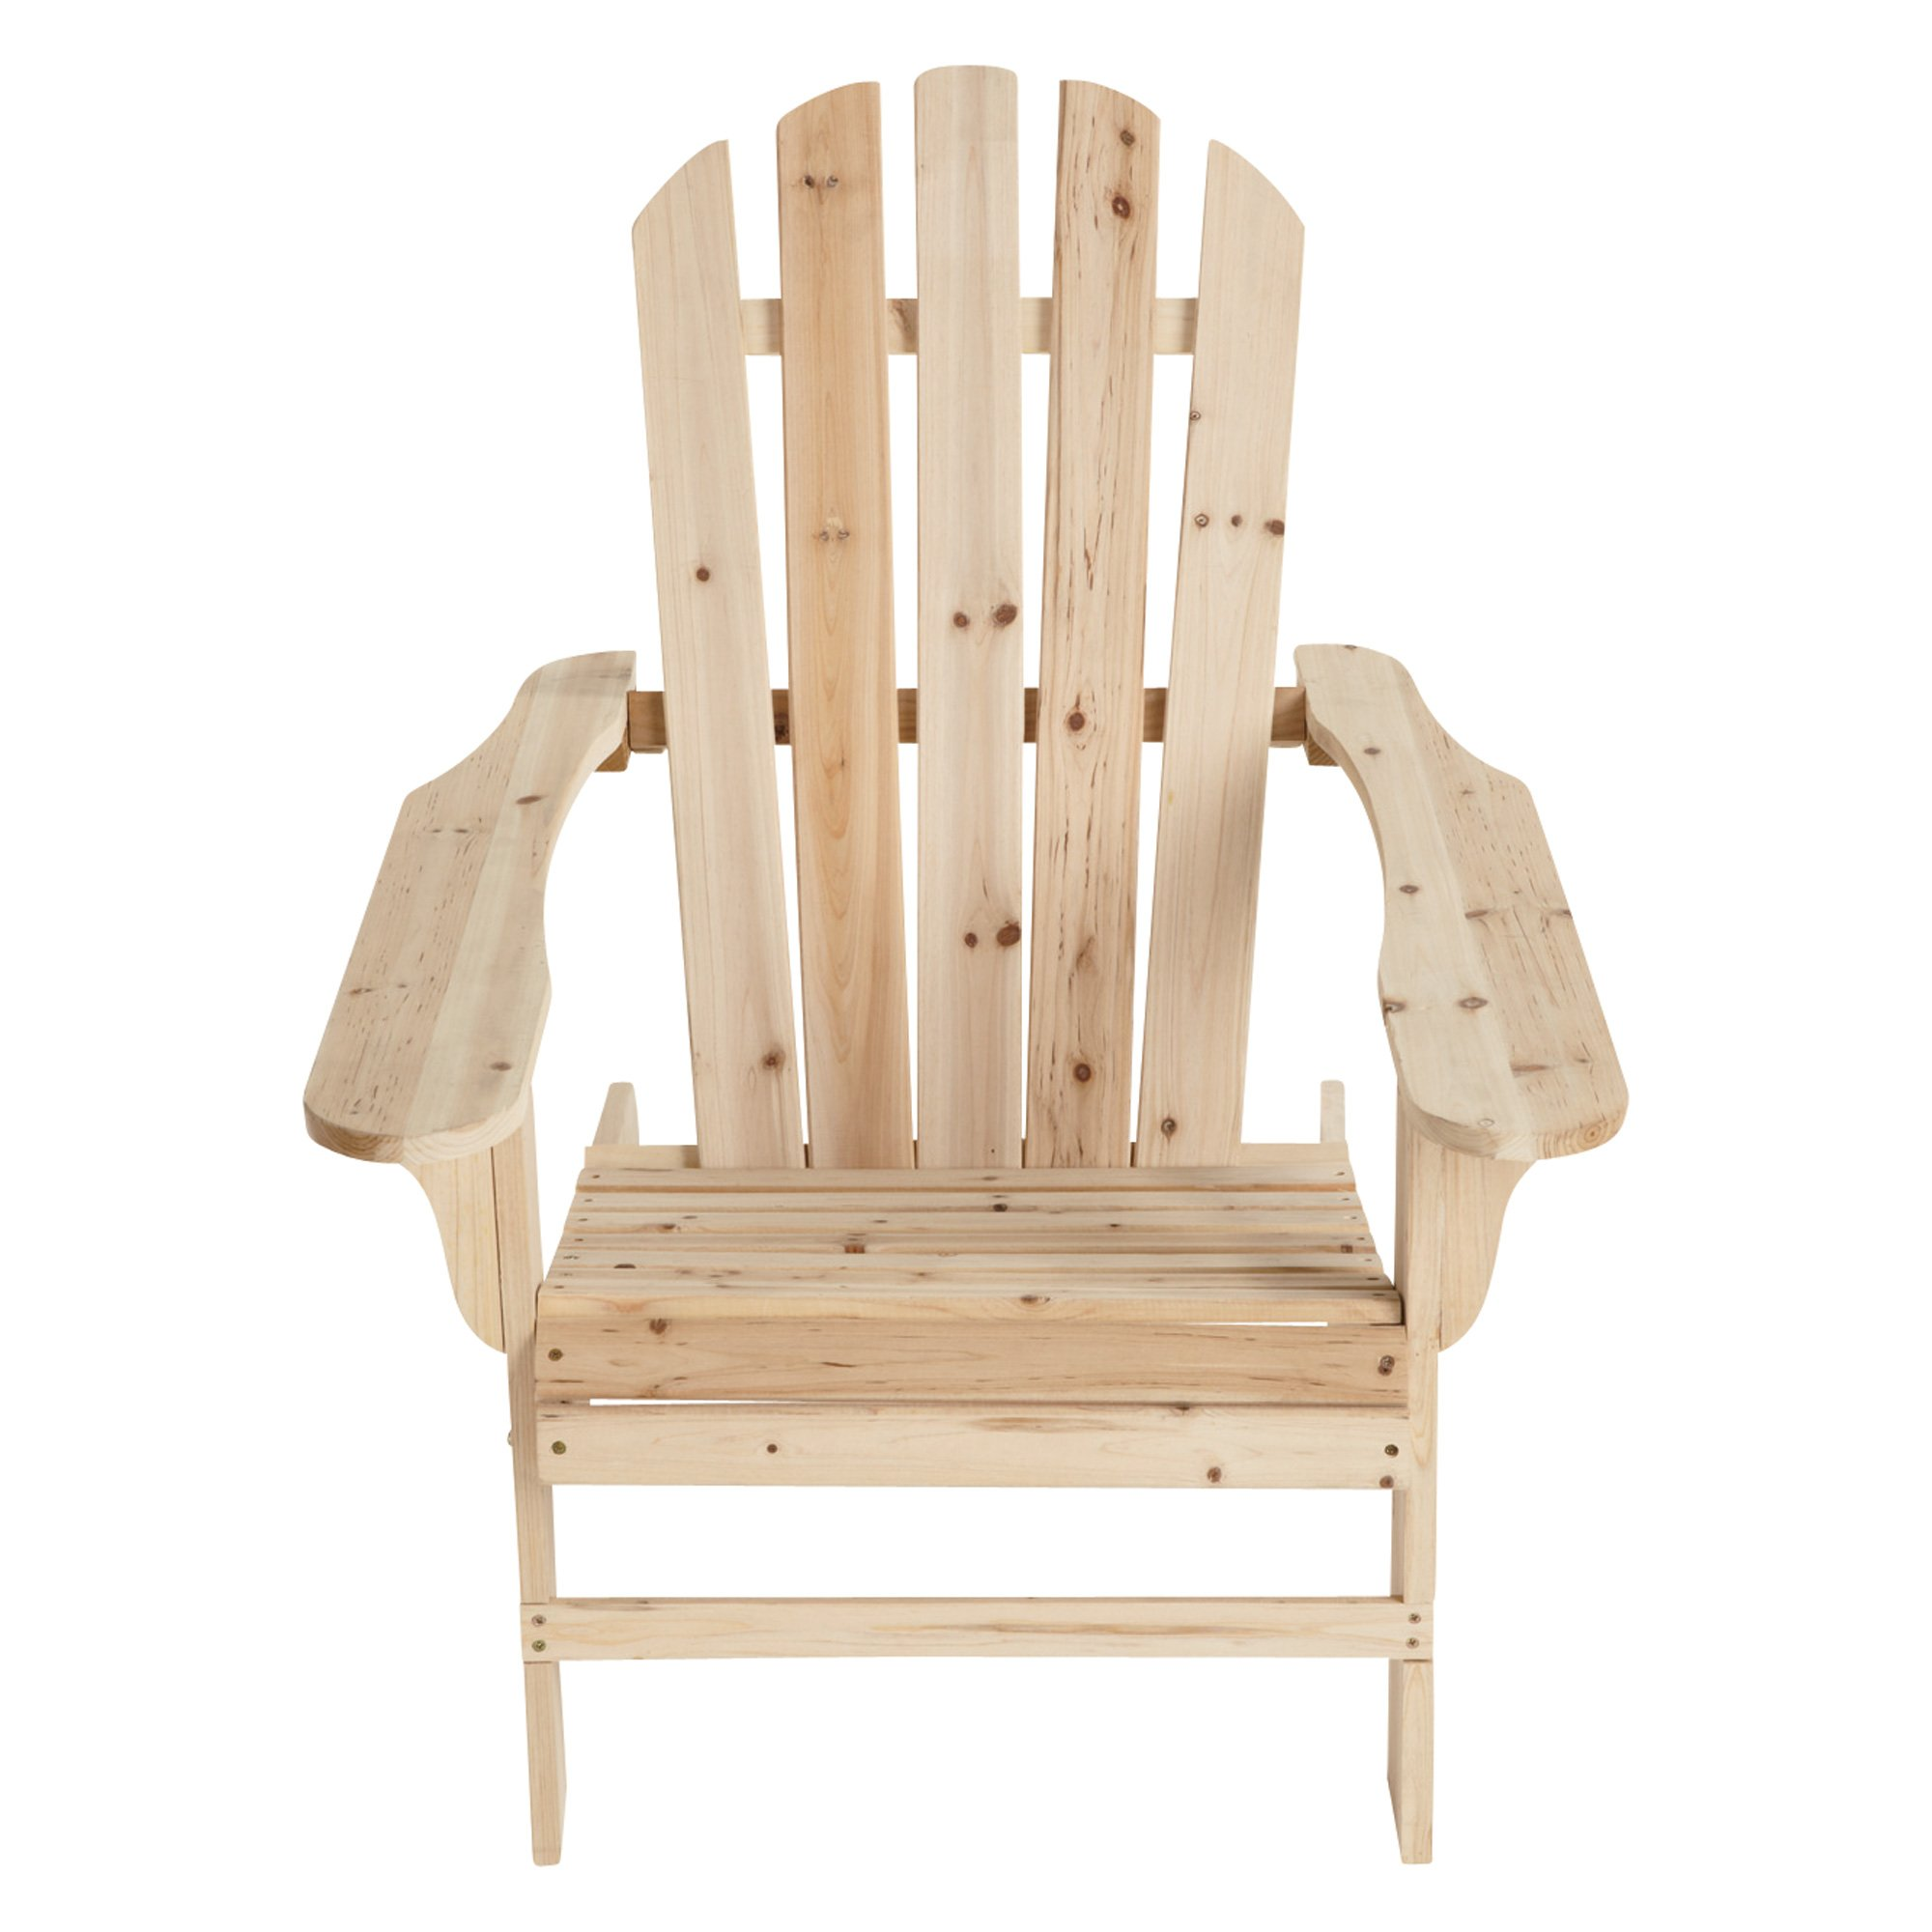 Cedar/Fir Adirondack Chair - 35 3/4in.L x 30 1/2in.W x 35 1/2in.H, Model# CS-001KD